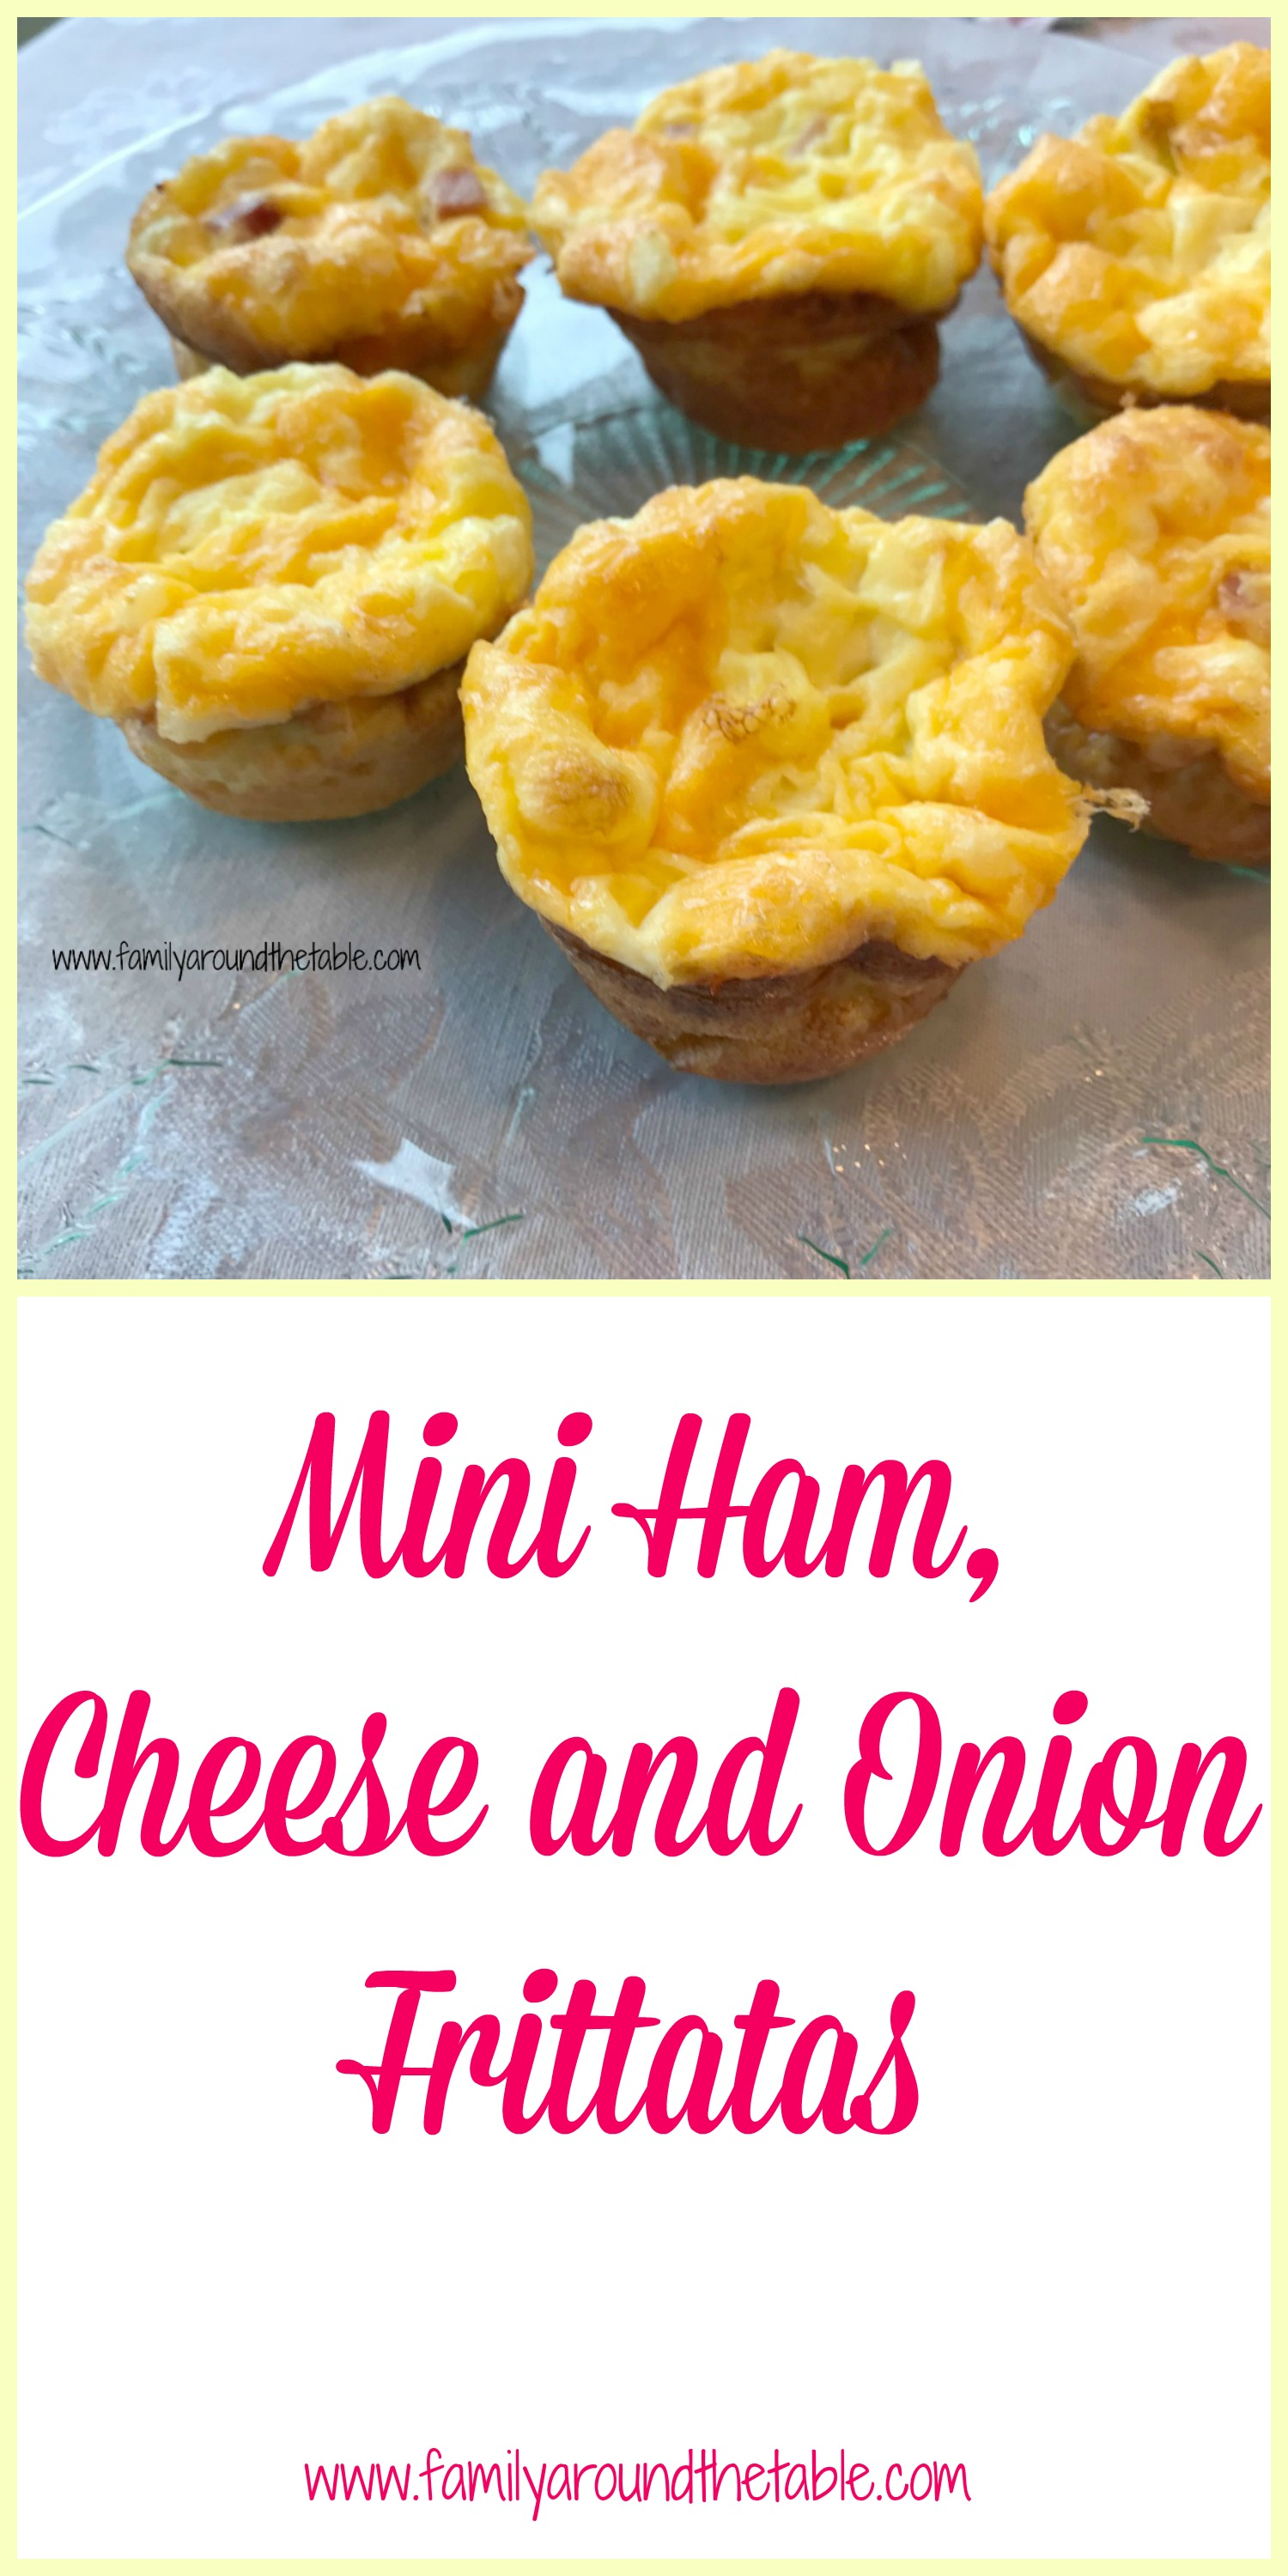 Mini ham, cheese and onion frittatas make a great brunch item.